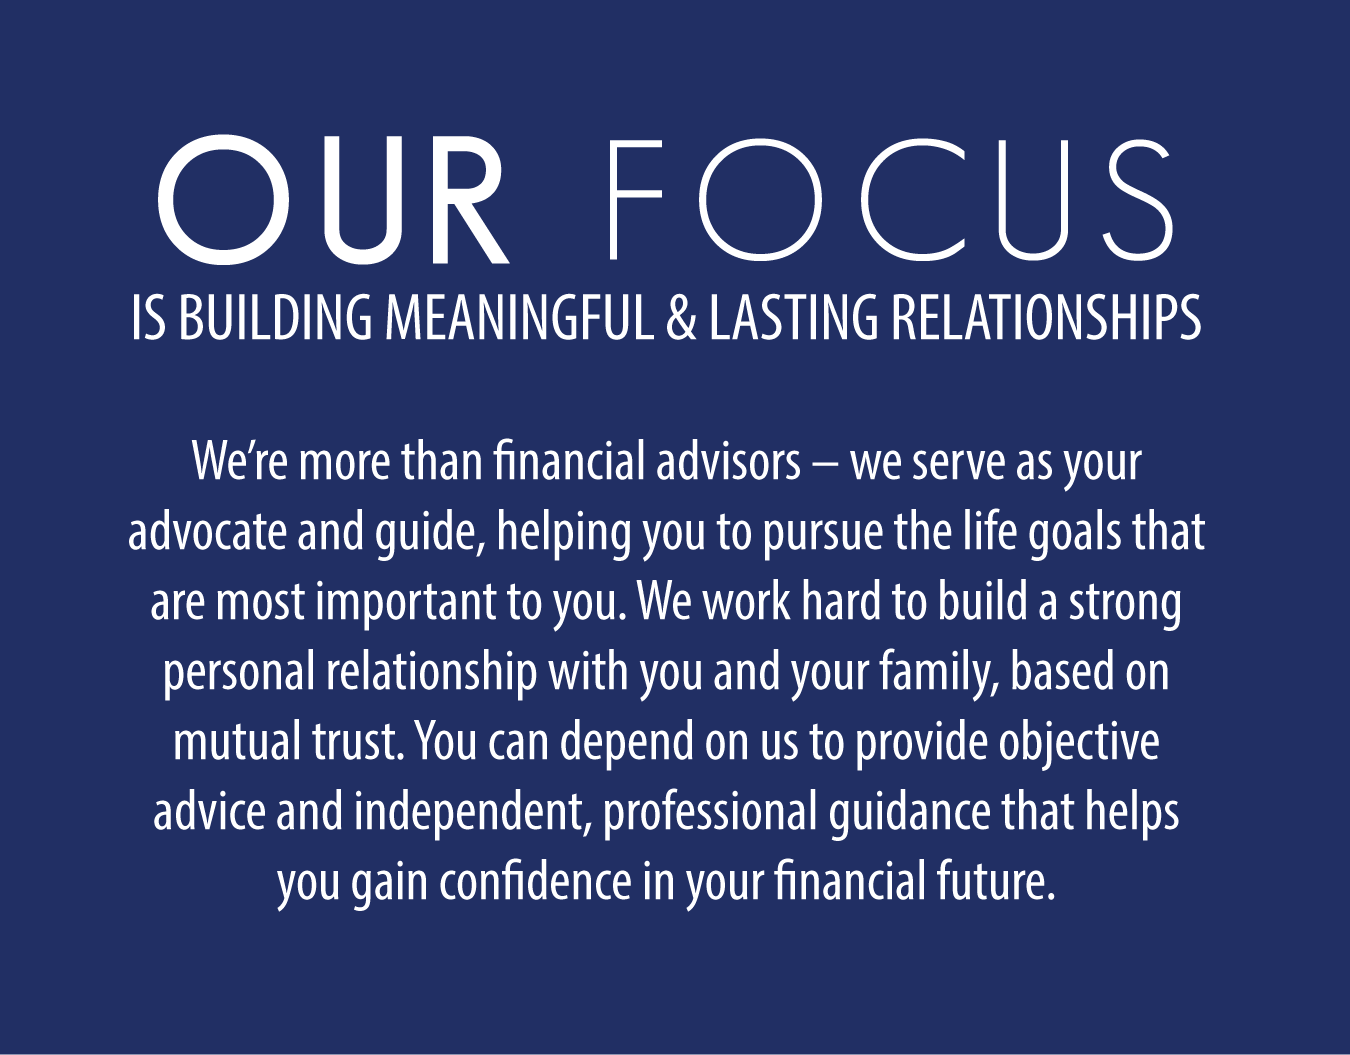 OUR FOCUS-01.png